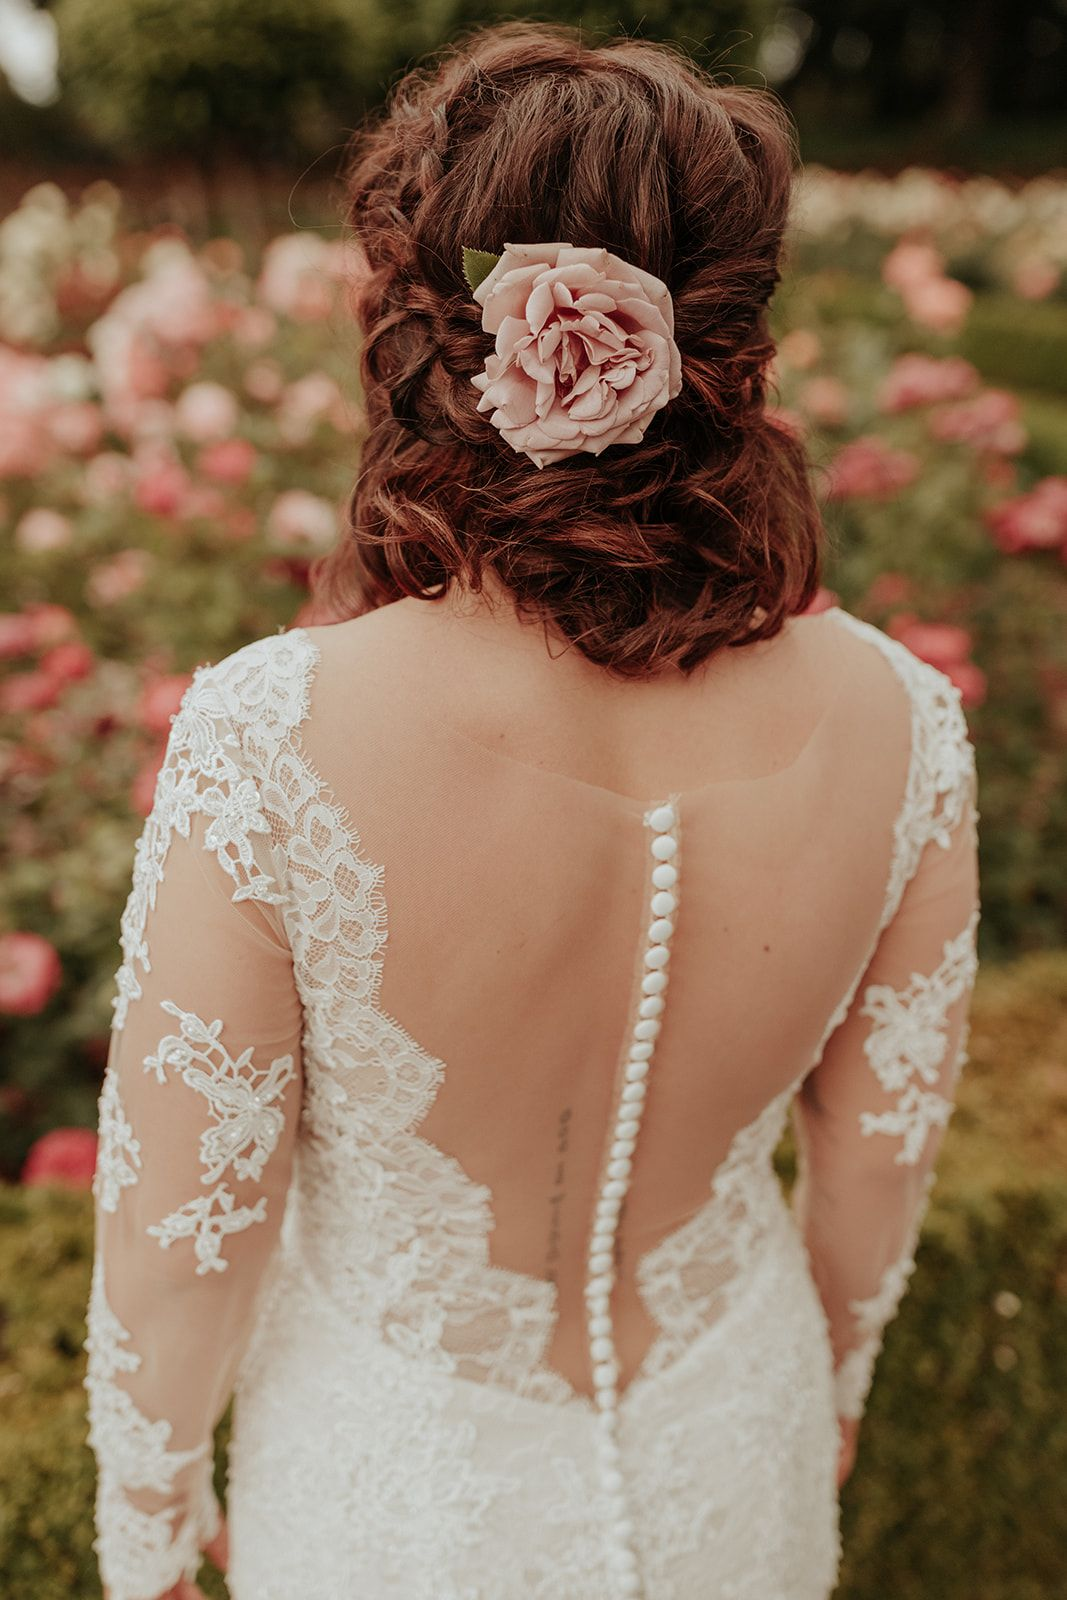 Long Sleeve Lace Wedding Gown By Eddie K Eclectic Indoor Wedding At The Evergreen Portland Oregon Styled D Floral Tiara Wedding Gowns Lace Indoor Wedding